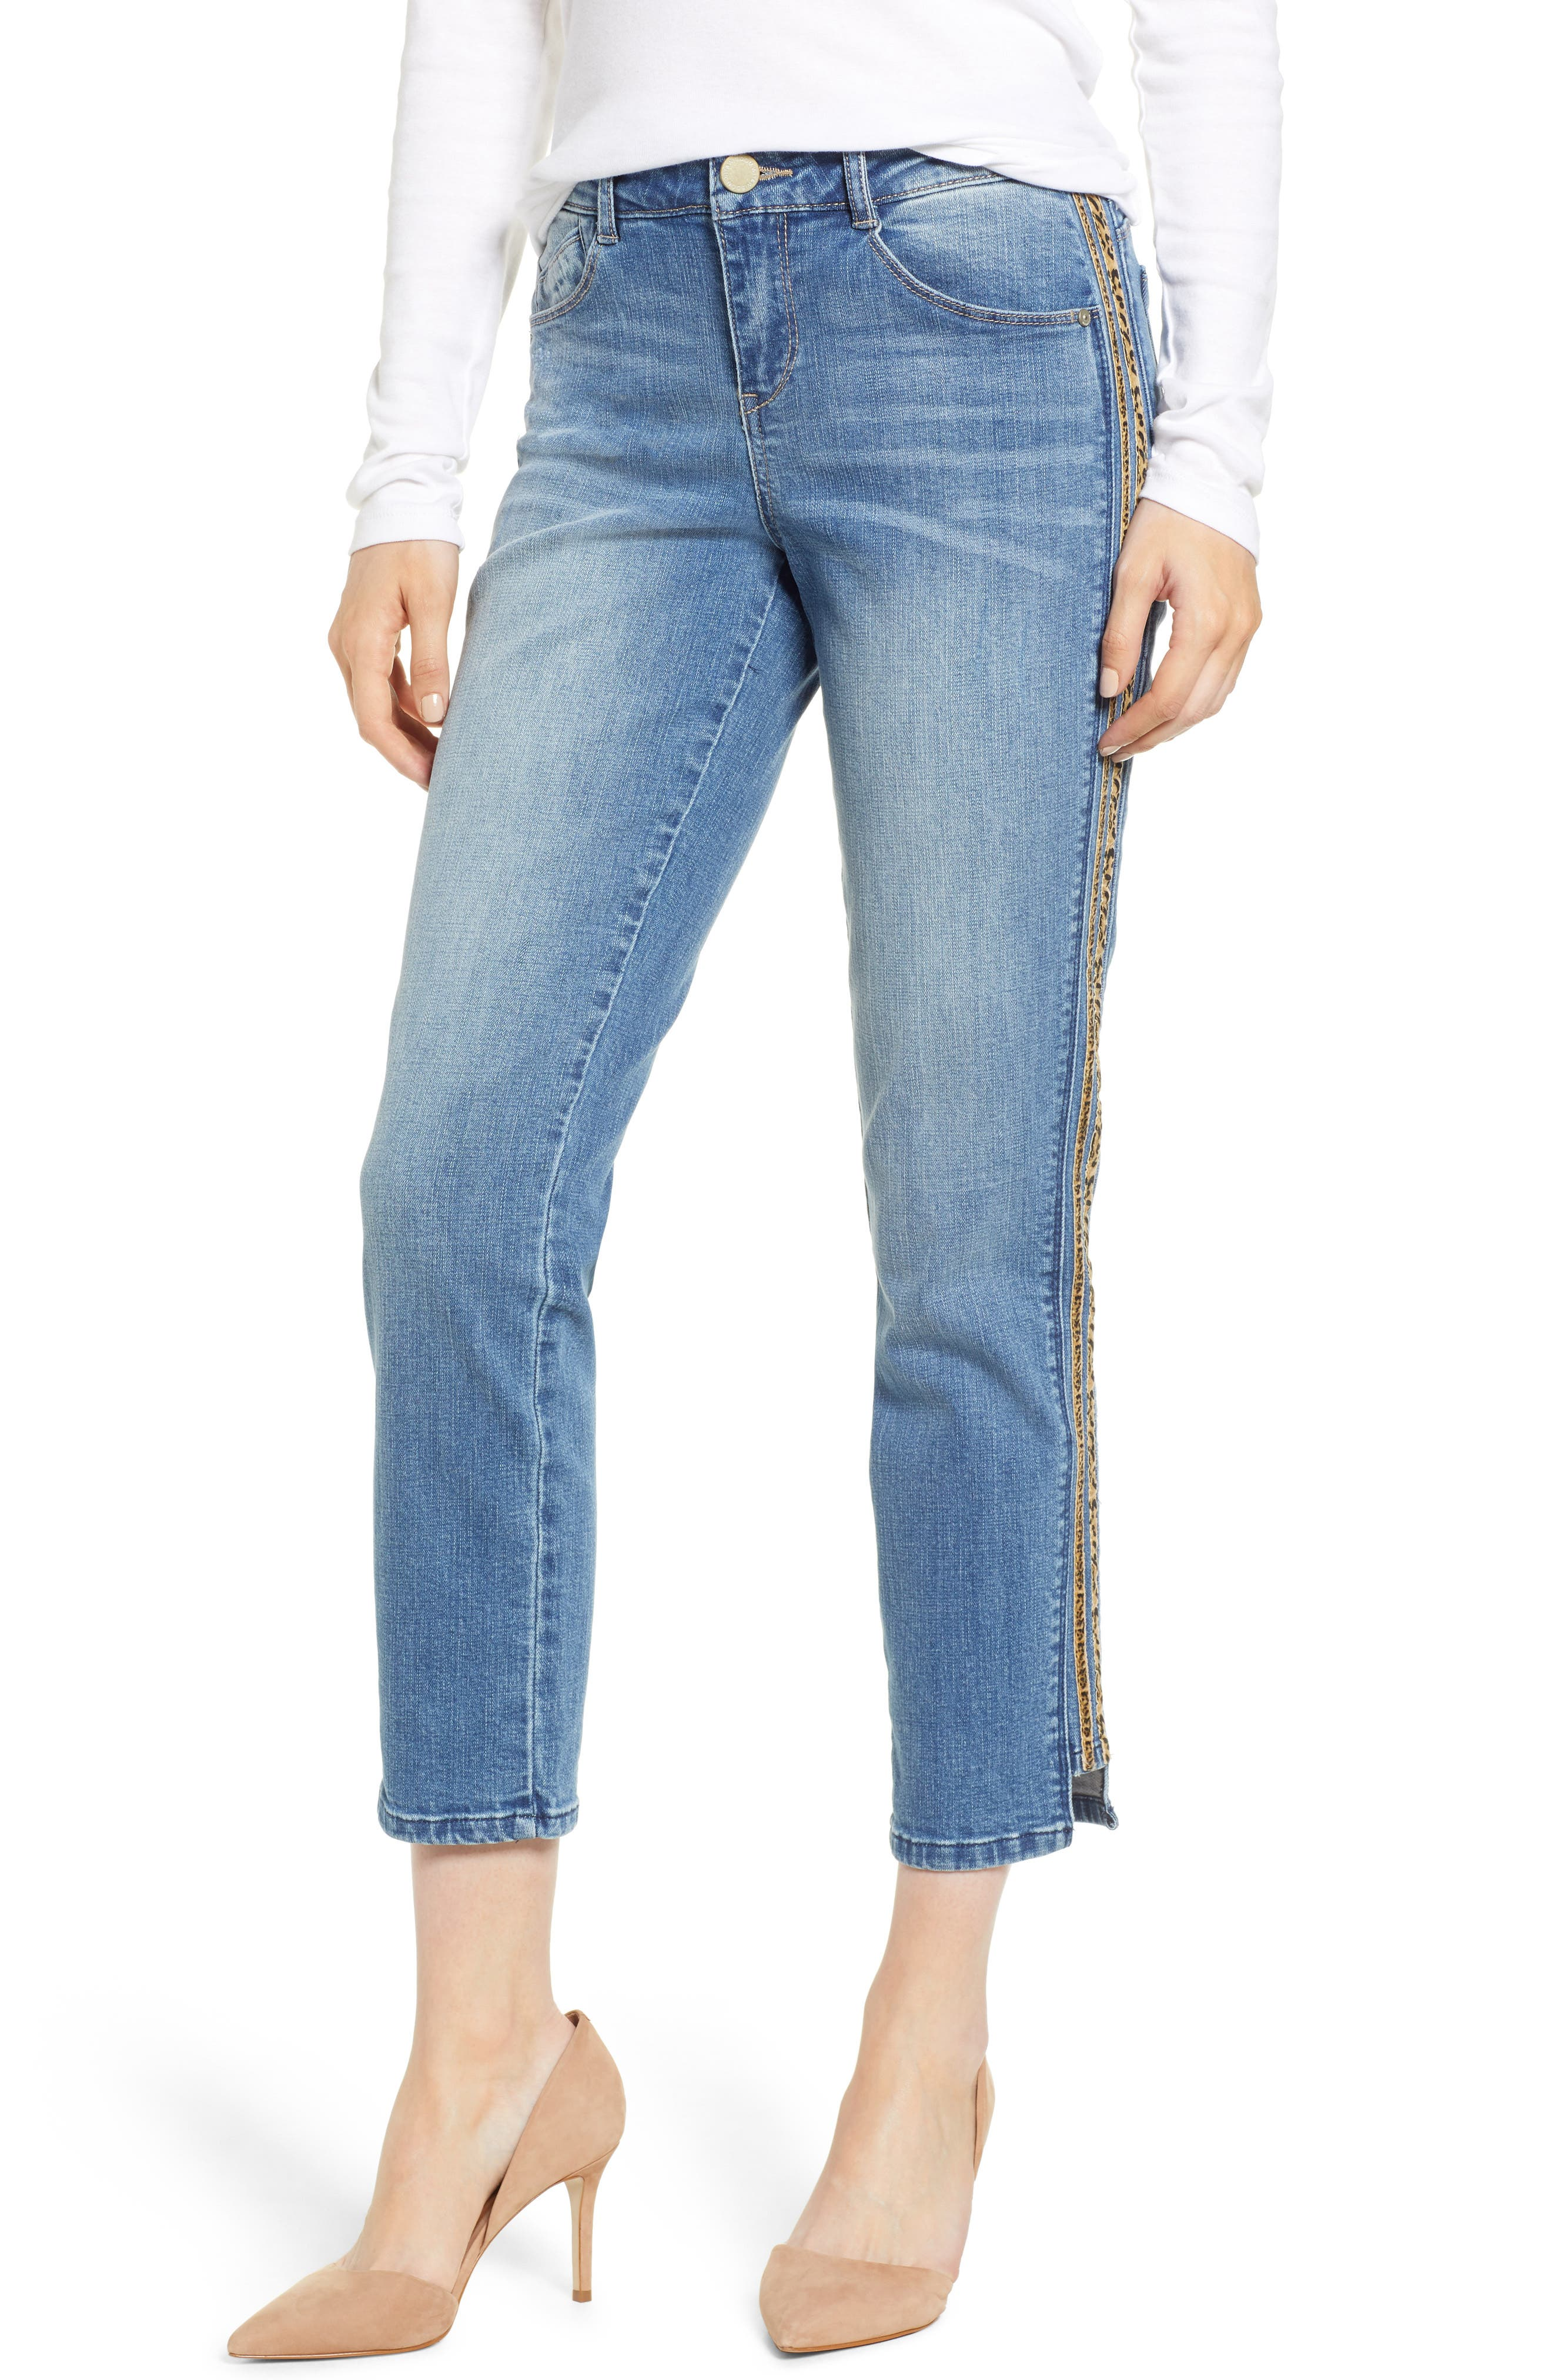 Spice up your denim collection with these leopard-striped jeans cut from soft, flexible denim in a lived-in light wash. Style Name: Wit & Wisdom Flex-Ellent Leopard Stripe Slim Straight Leg Jeans (Nordstrom Exclusive). Style Number: 5706223. Available in stores.